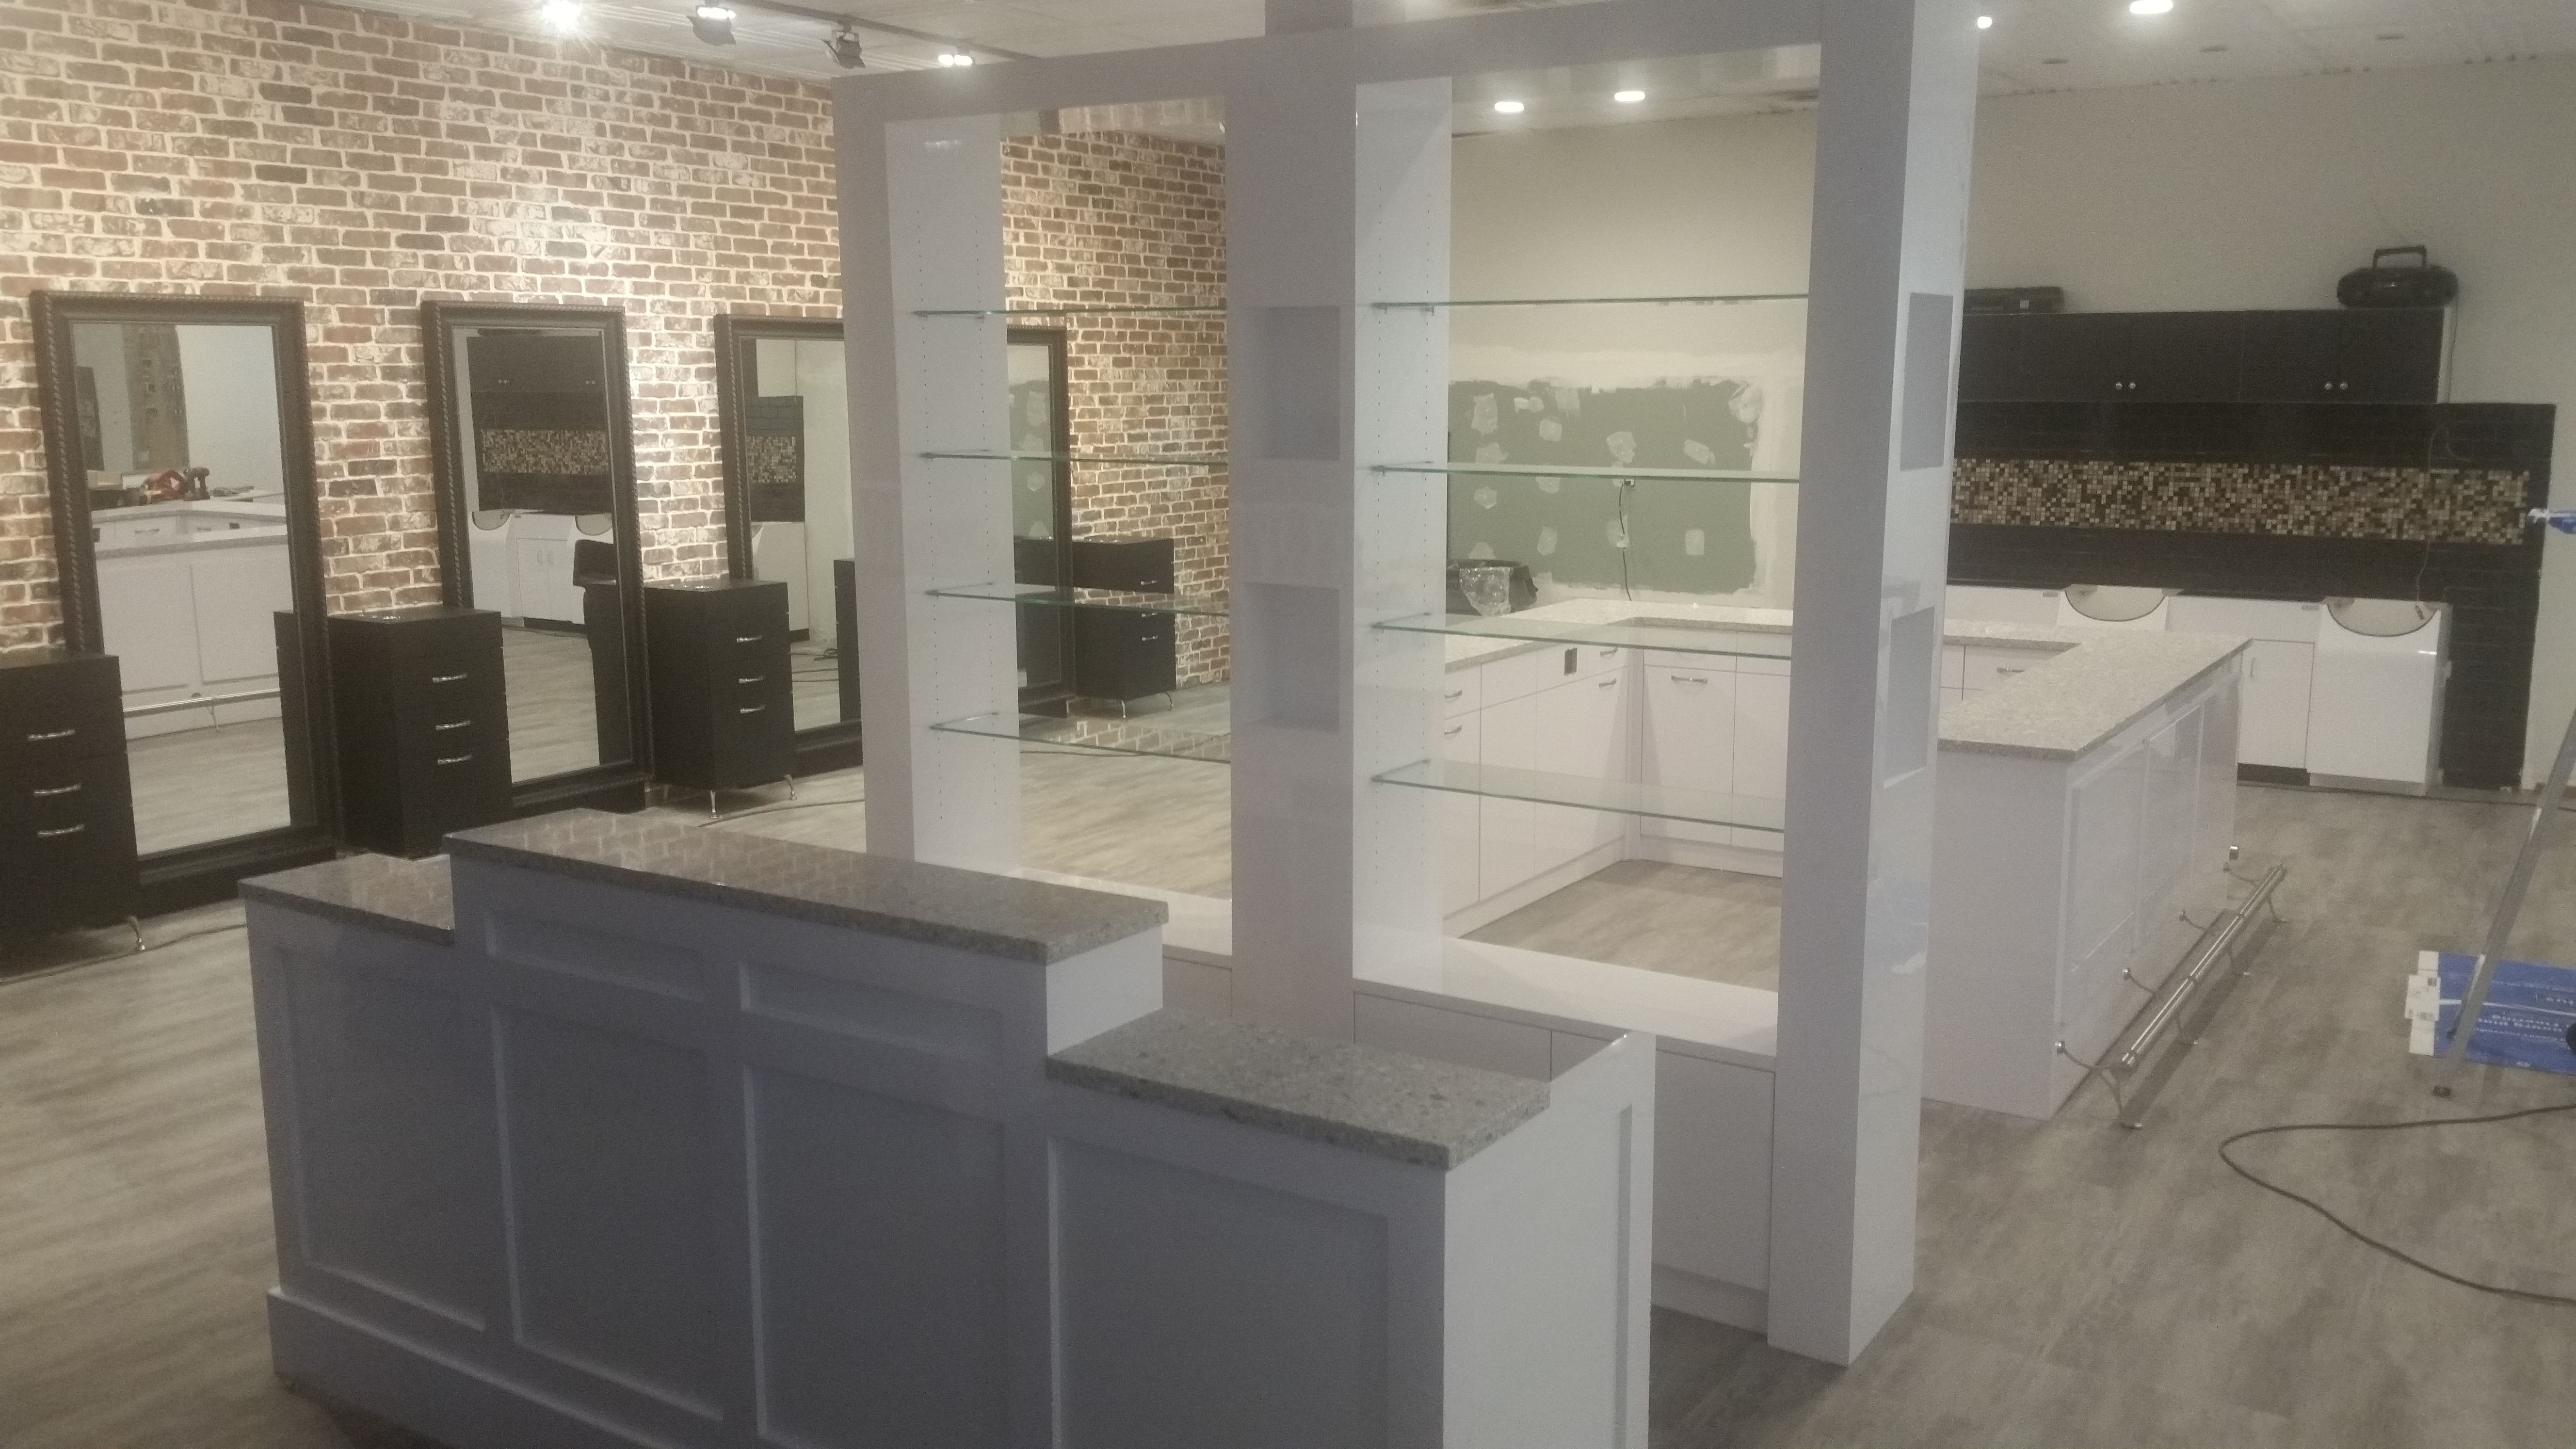 Swank Salon Freehold NJ All Eight Feet Wide For A Dramatic Center Of Space Dividing